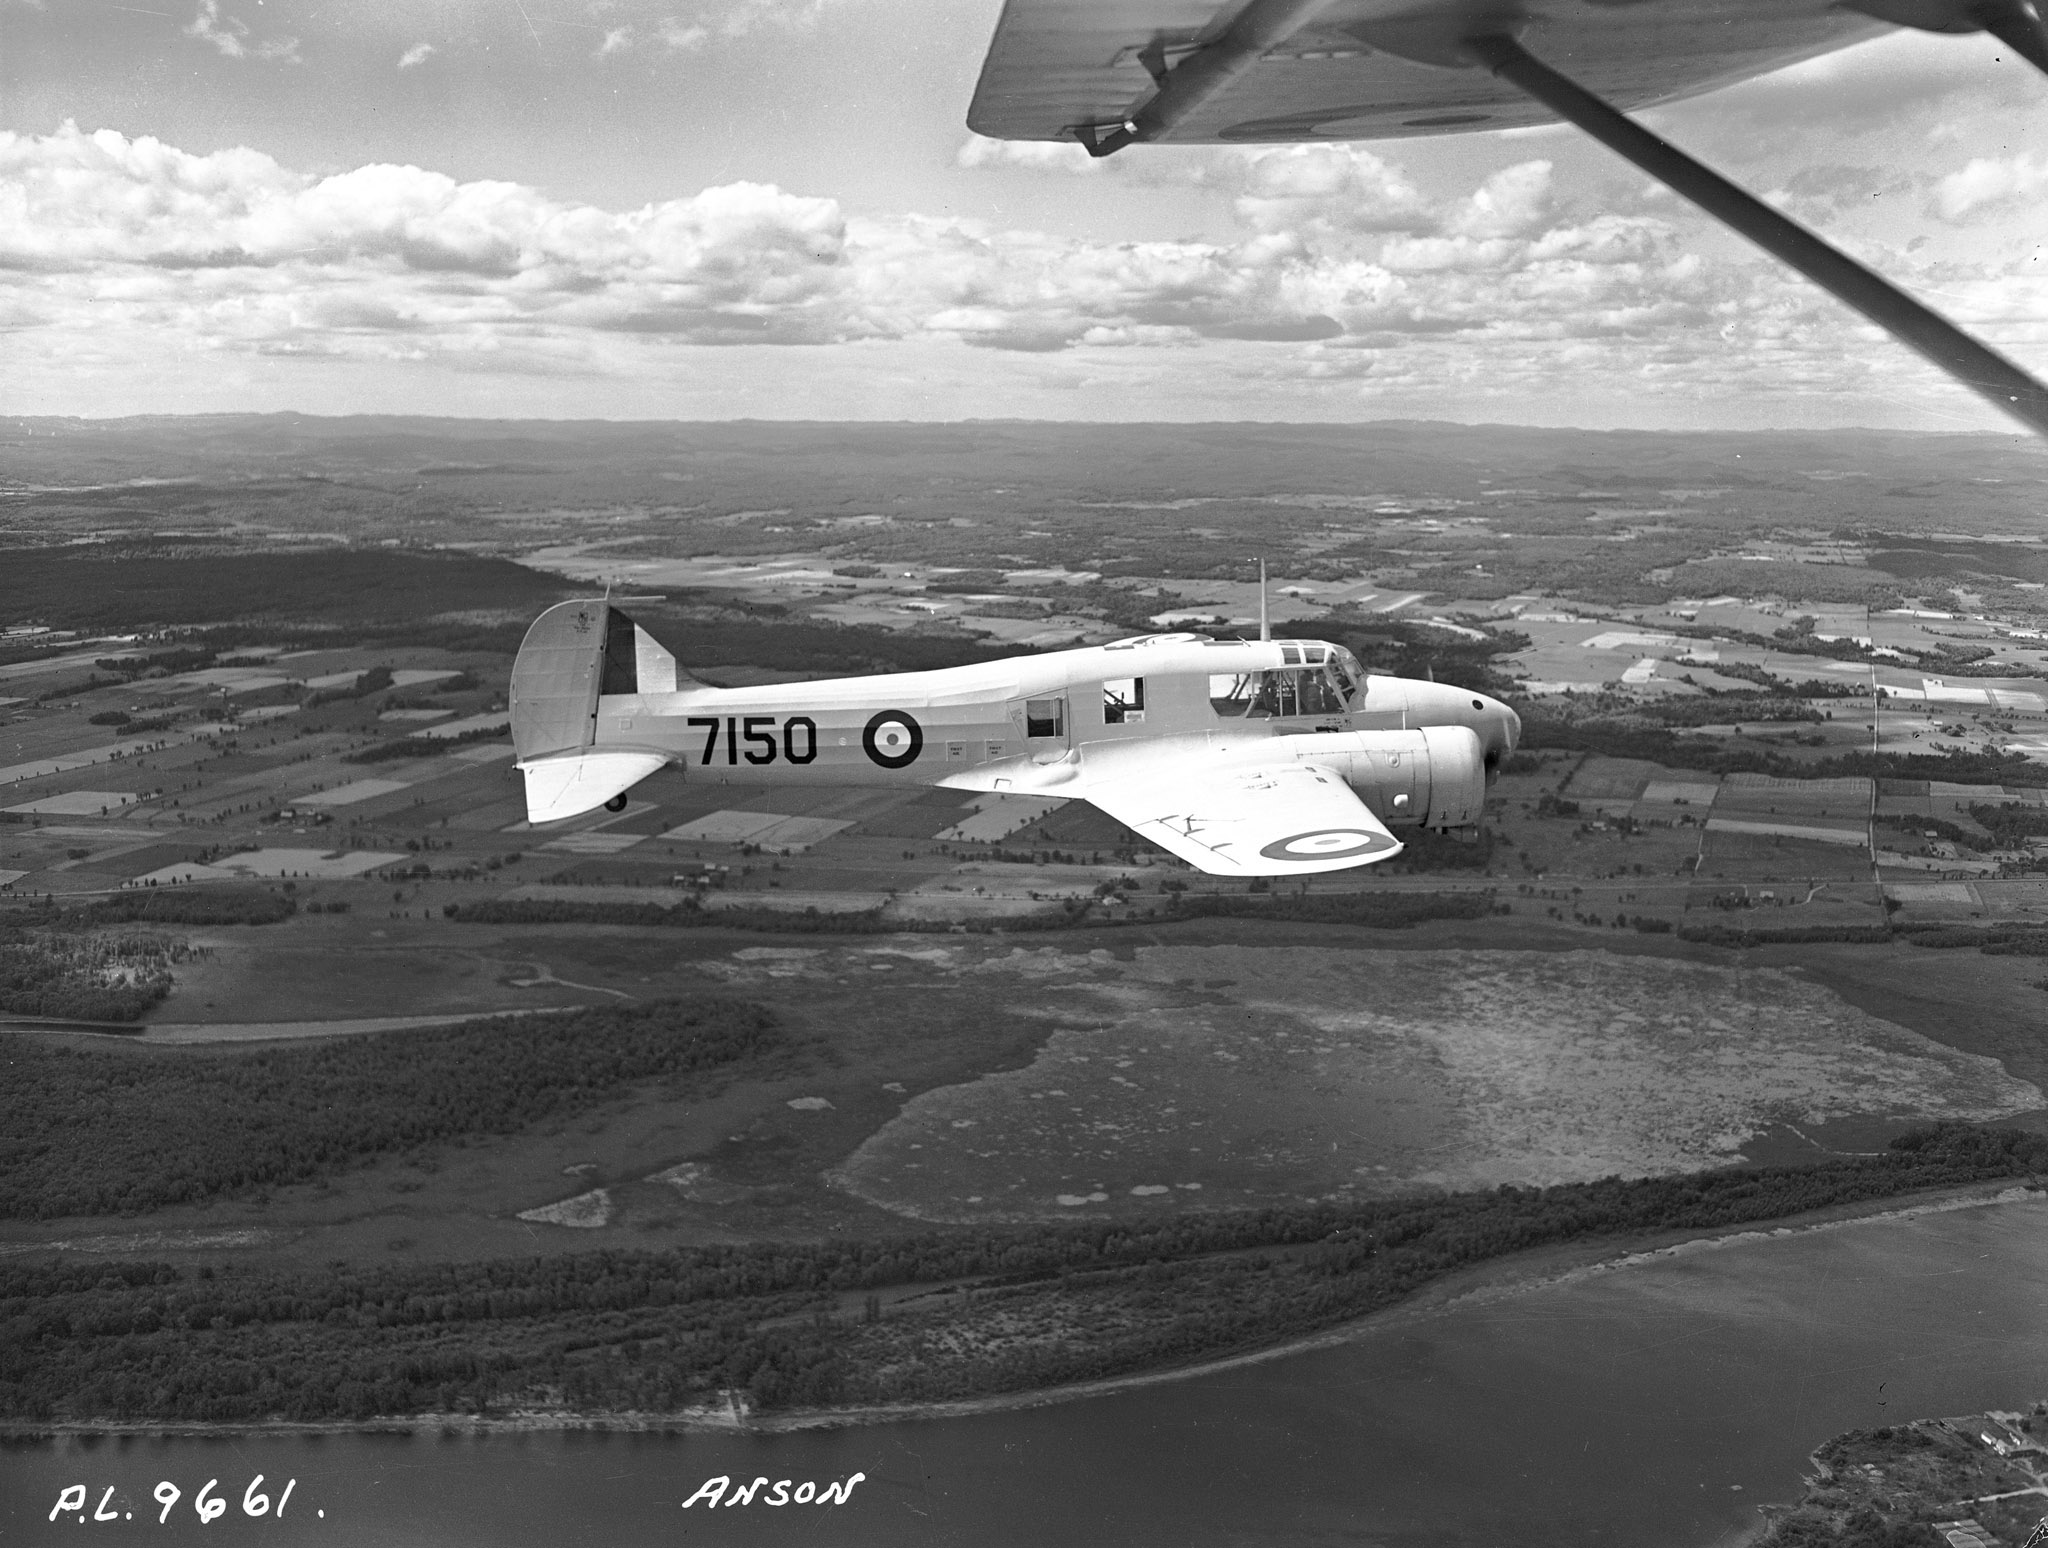 An Avro Anson, similar to the Avro Anson Mark II shown in this August 1942 file photo, crashed in the British Columbia woods in October 1942. All four airmen on board died; their remains were recently recovered and identified. PHOTO: DND